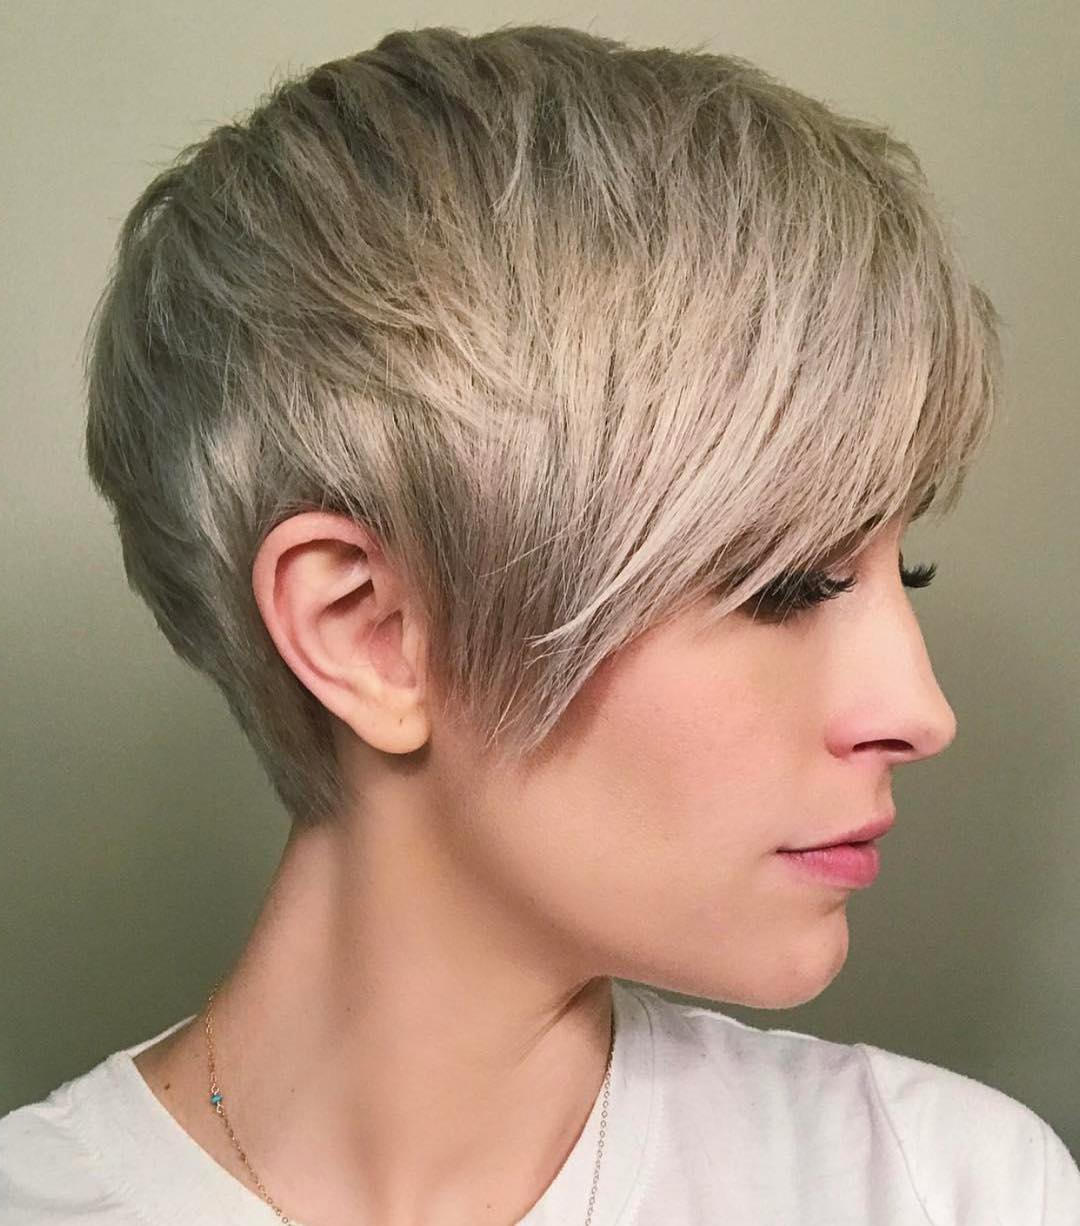 10 Best Short Straight Hairstyle Trends – Women Short Haircut Ideas 2018 With Easy Care Short Haircuts (View 1 of 25)